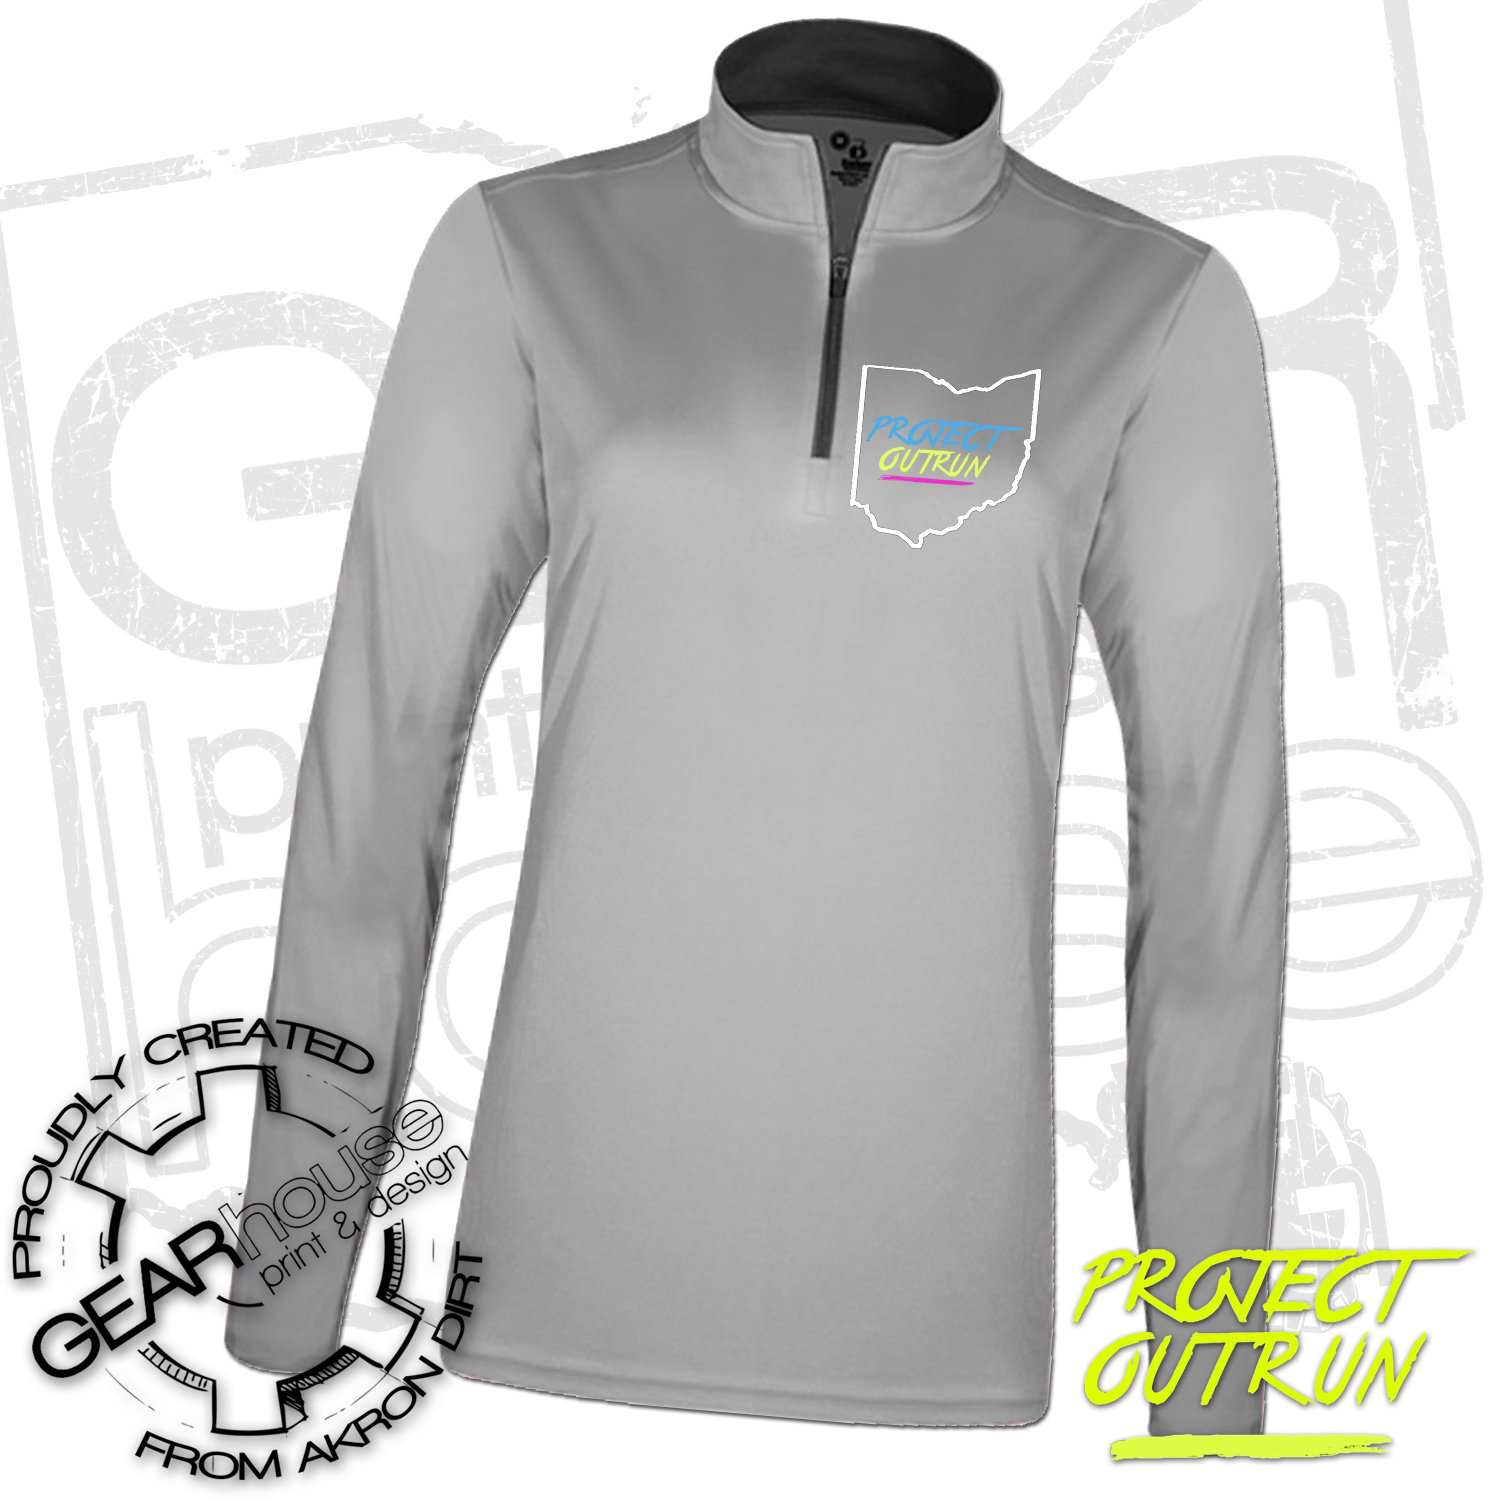 Project Outrun Women's Quarter Zip Pullover